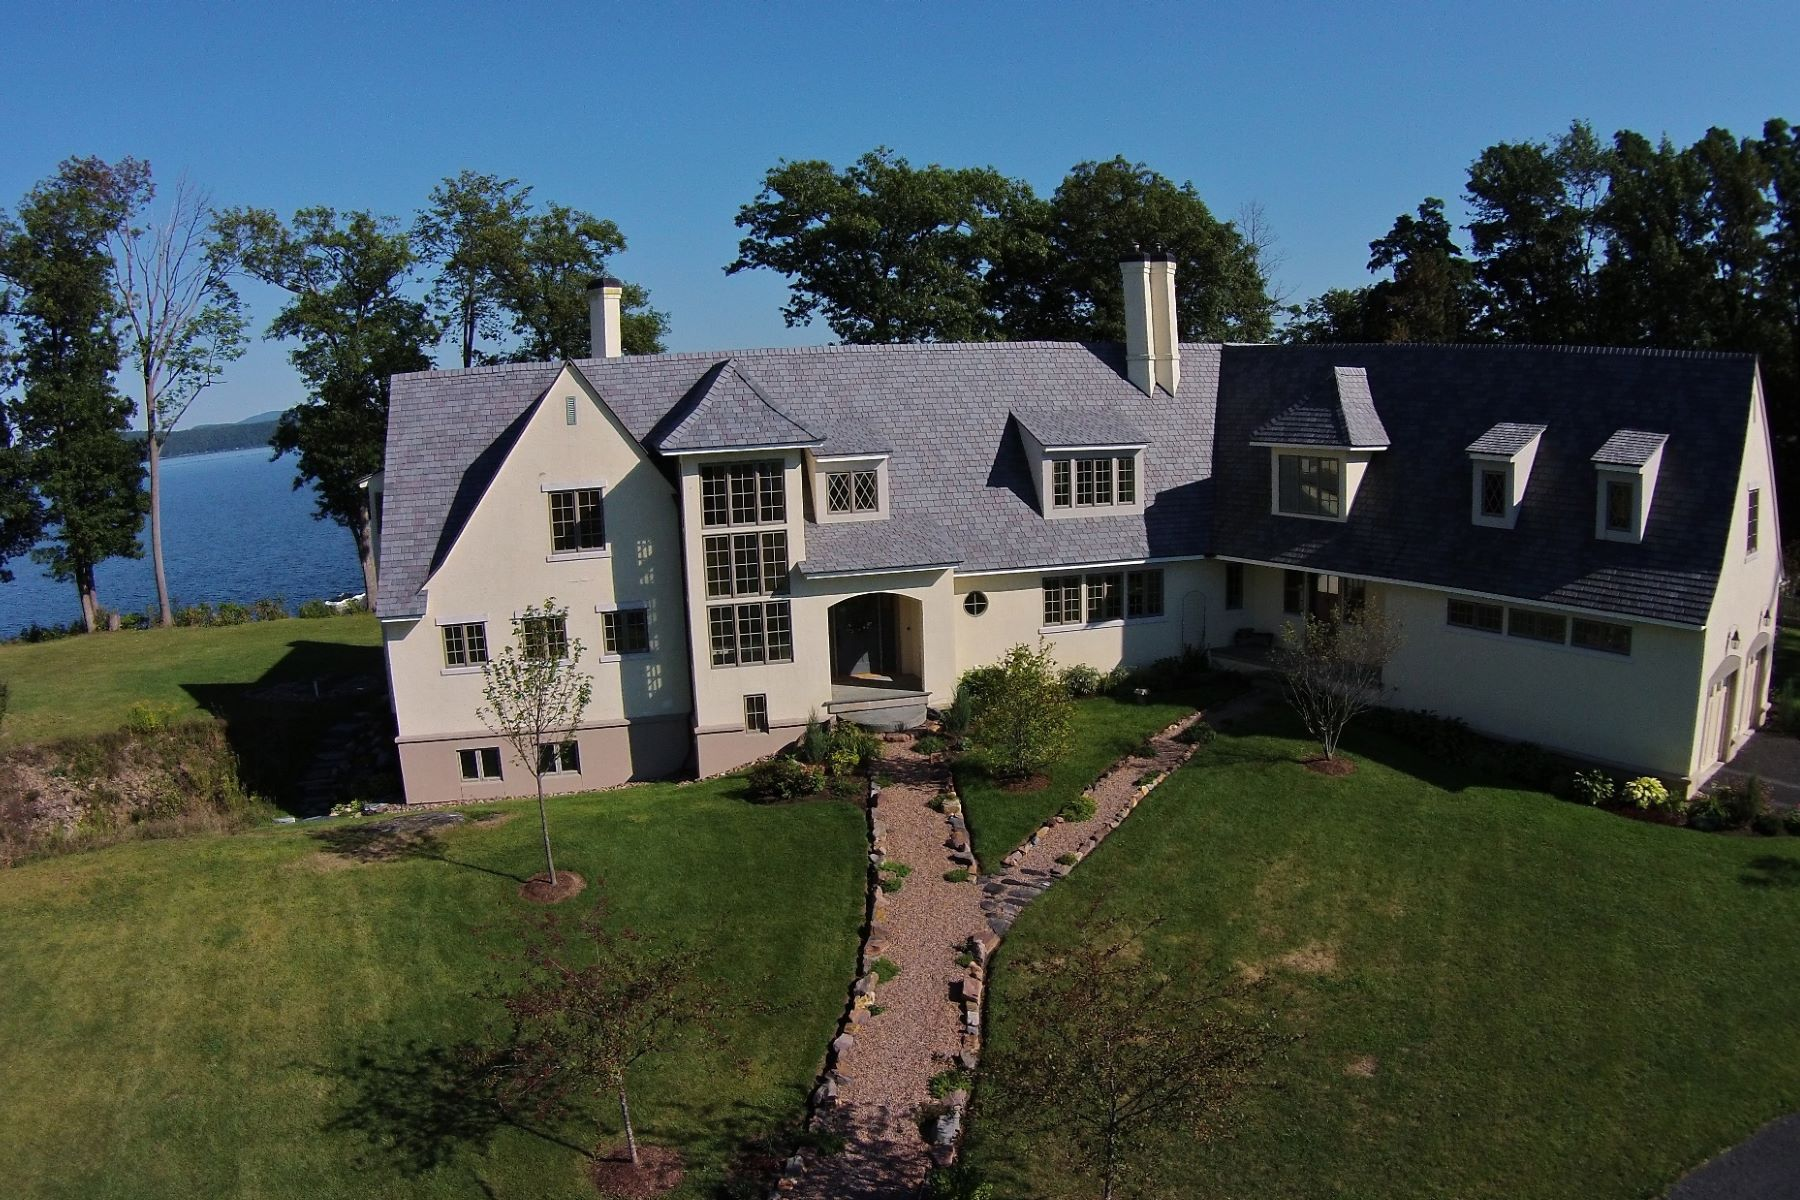 Casa Unifamiliar por un Venta en Architect Designed on Lake Champlain 135 Kibbe Pt South Hero, Vermont, 05486 Estados Unidos